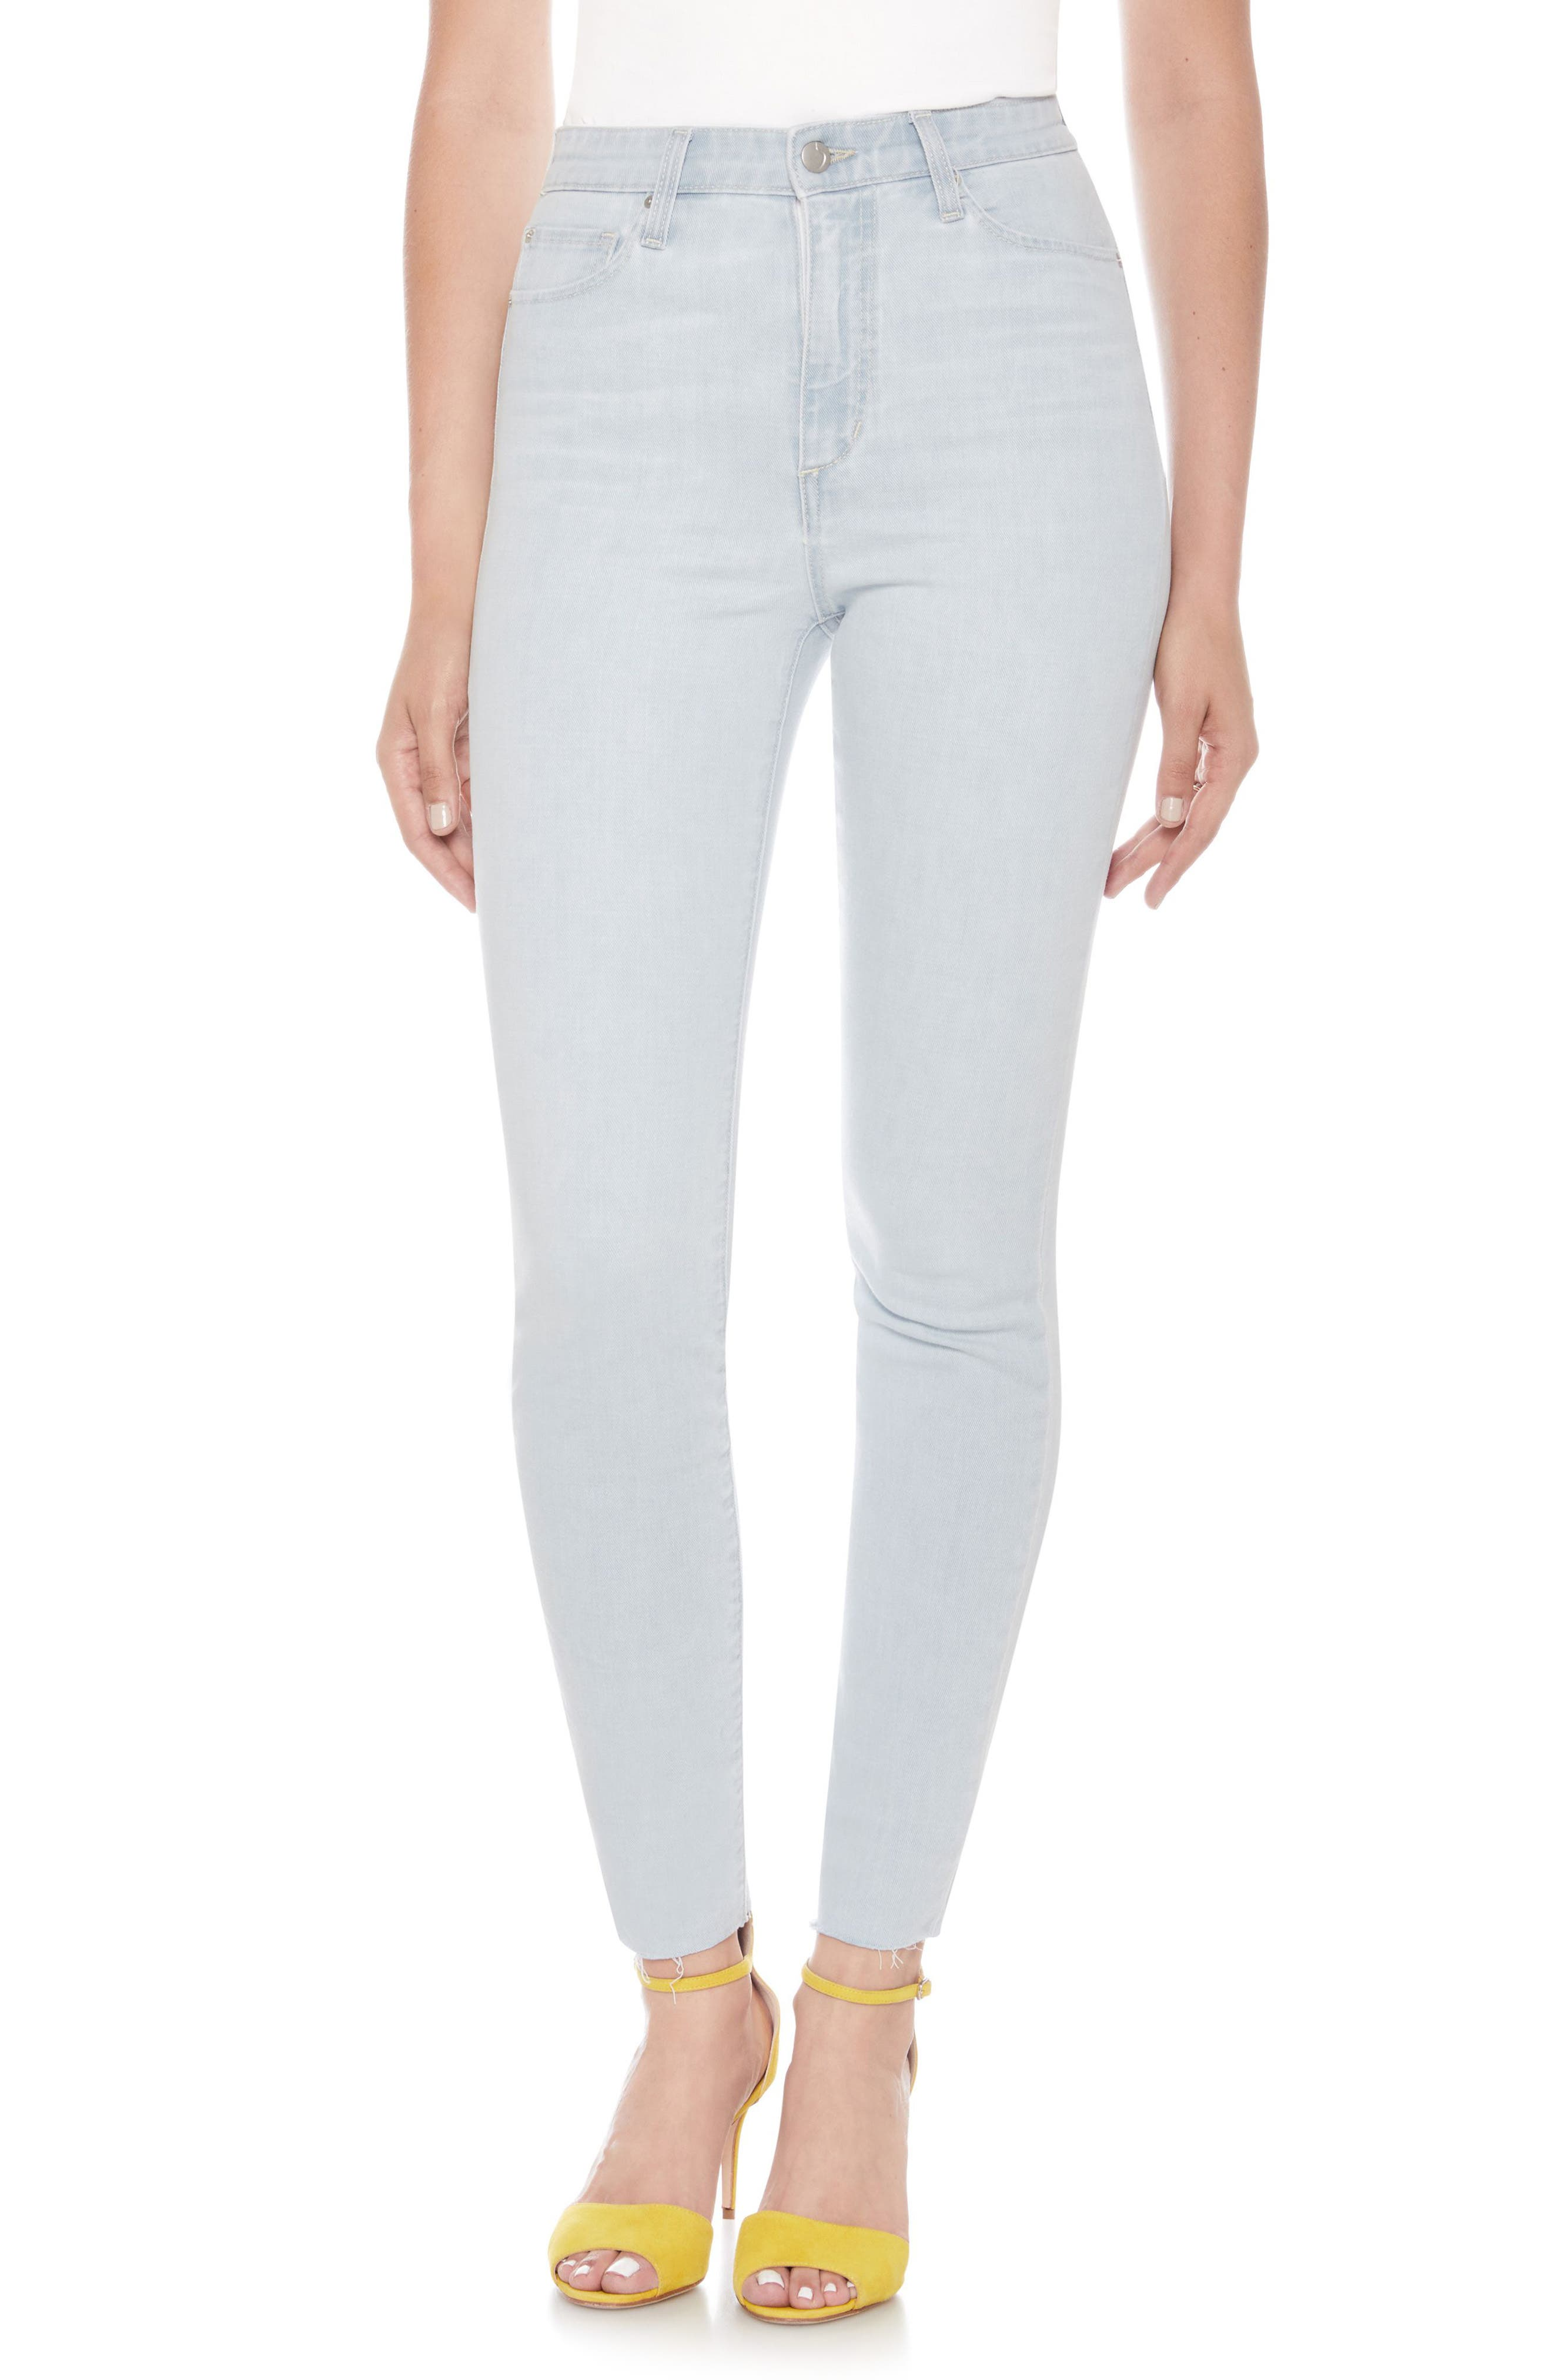 JOE'S,                             The Bella Super High Waist Ankle Skinny Jeans,                             Main thumbnail 1, color,                             430